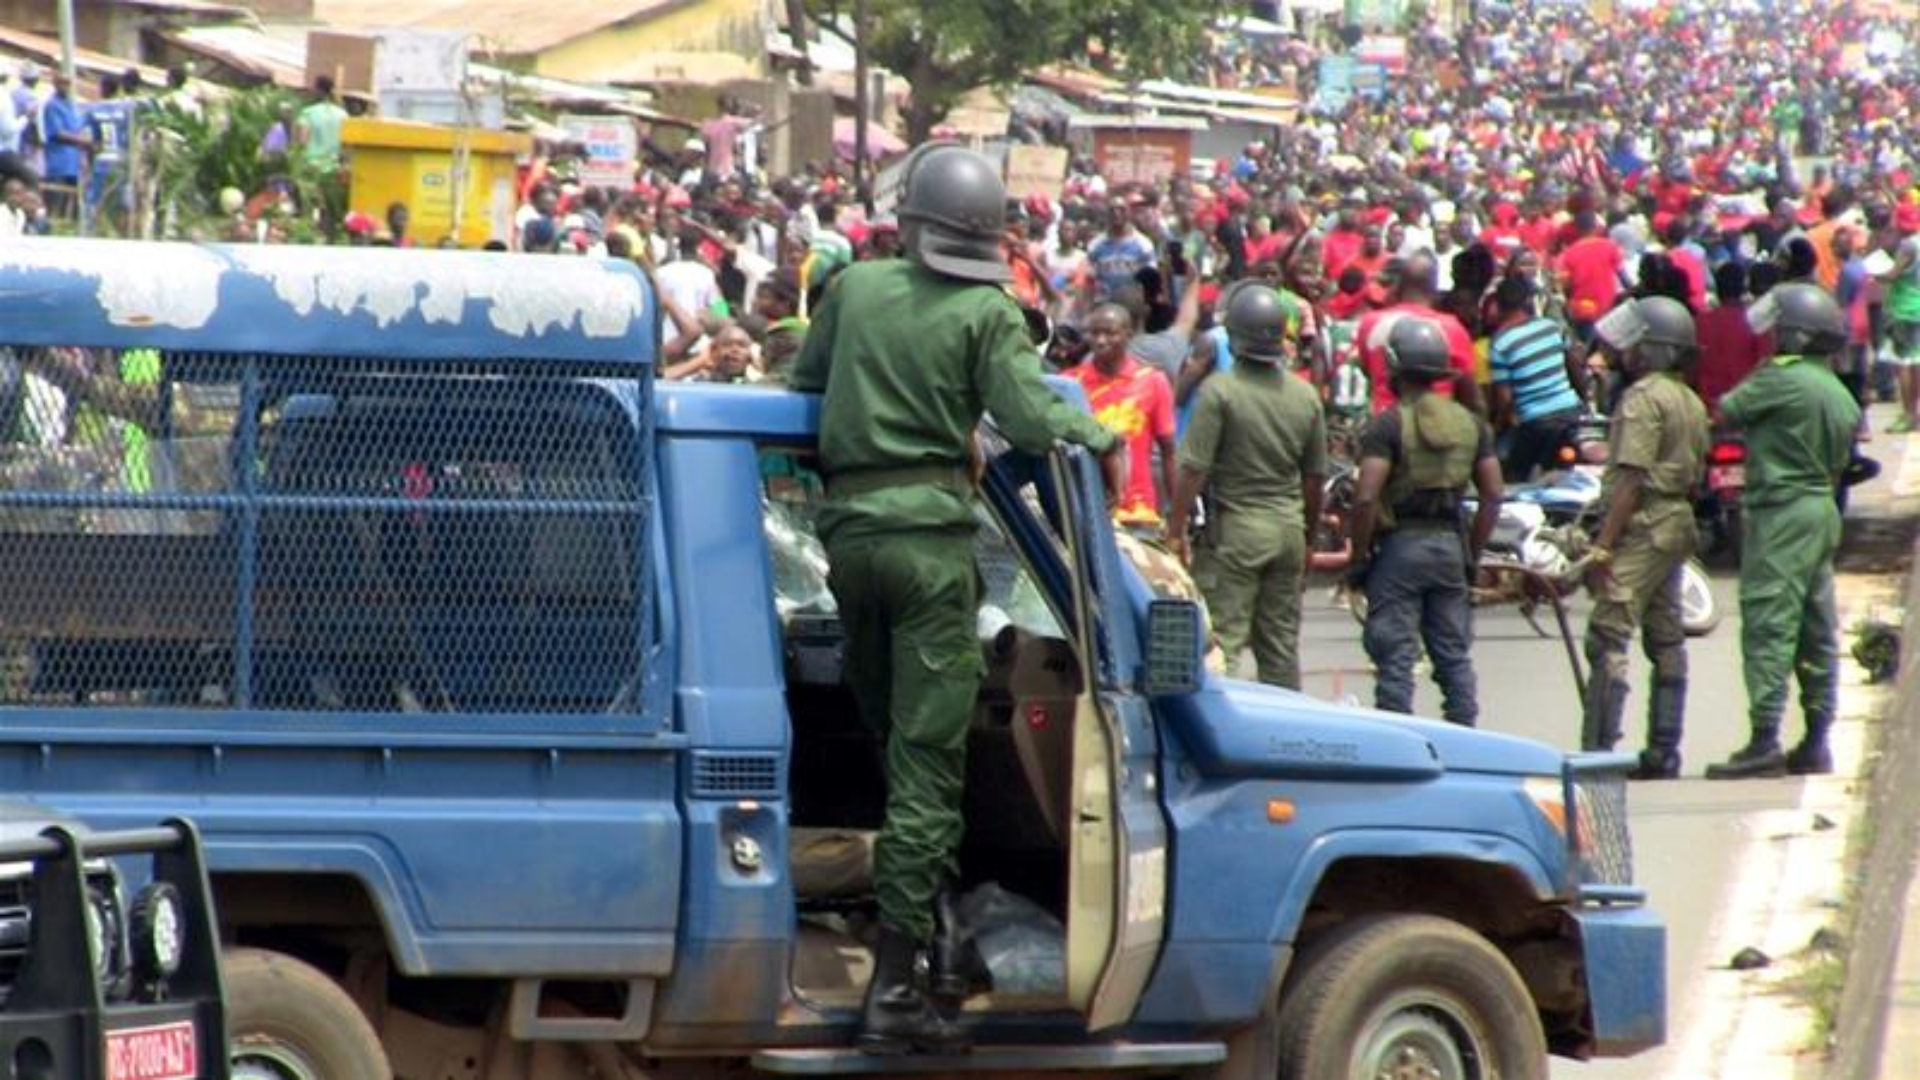 Guinea protesters urged to continue general strike